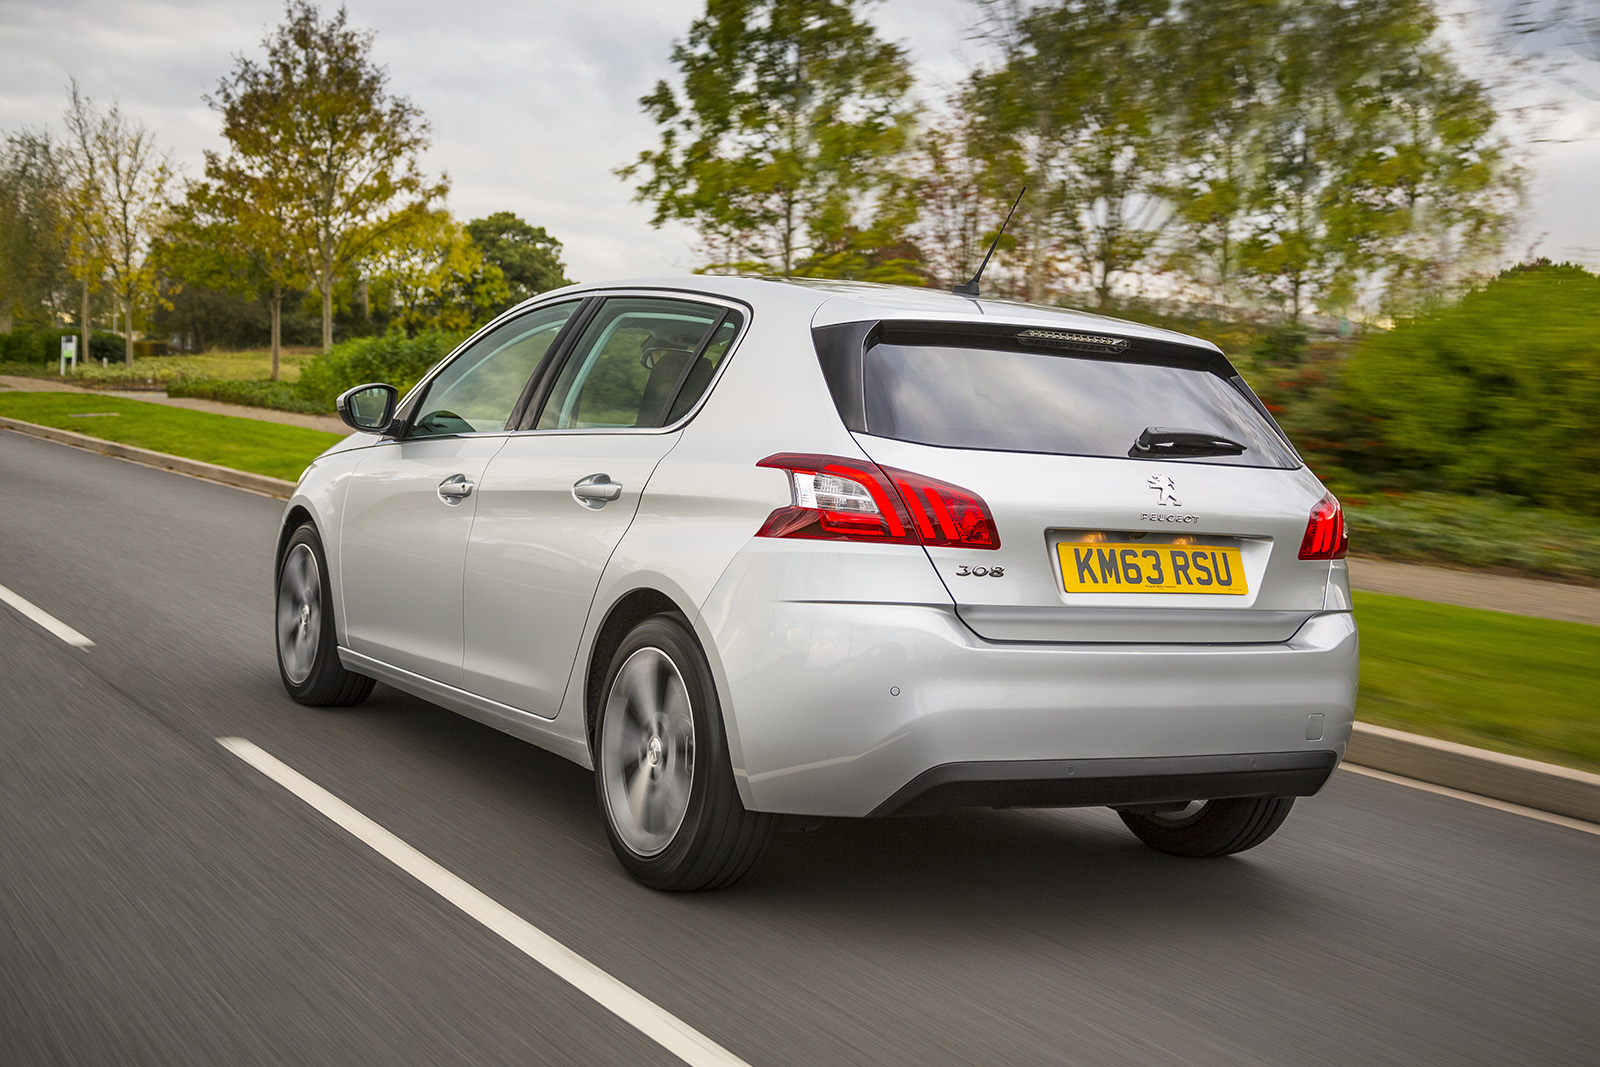 peugeot 308 1 6 hdi first drive. Black Bedroom Furniture Sets. Home Design Ideas